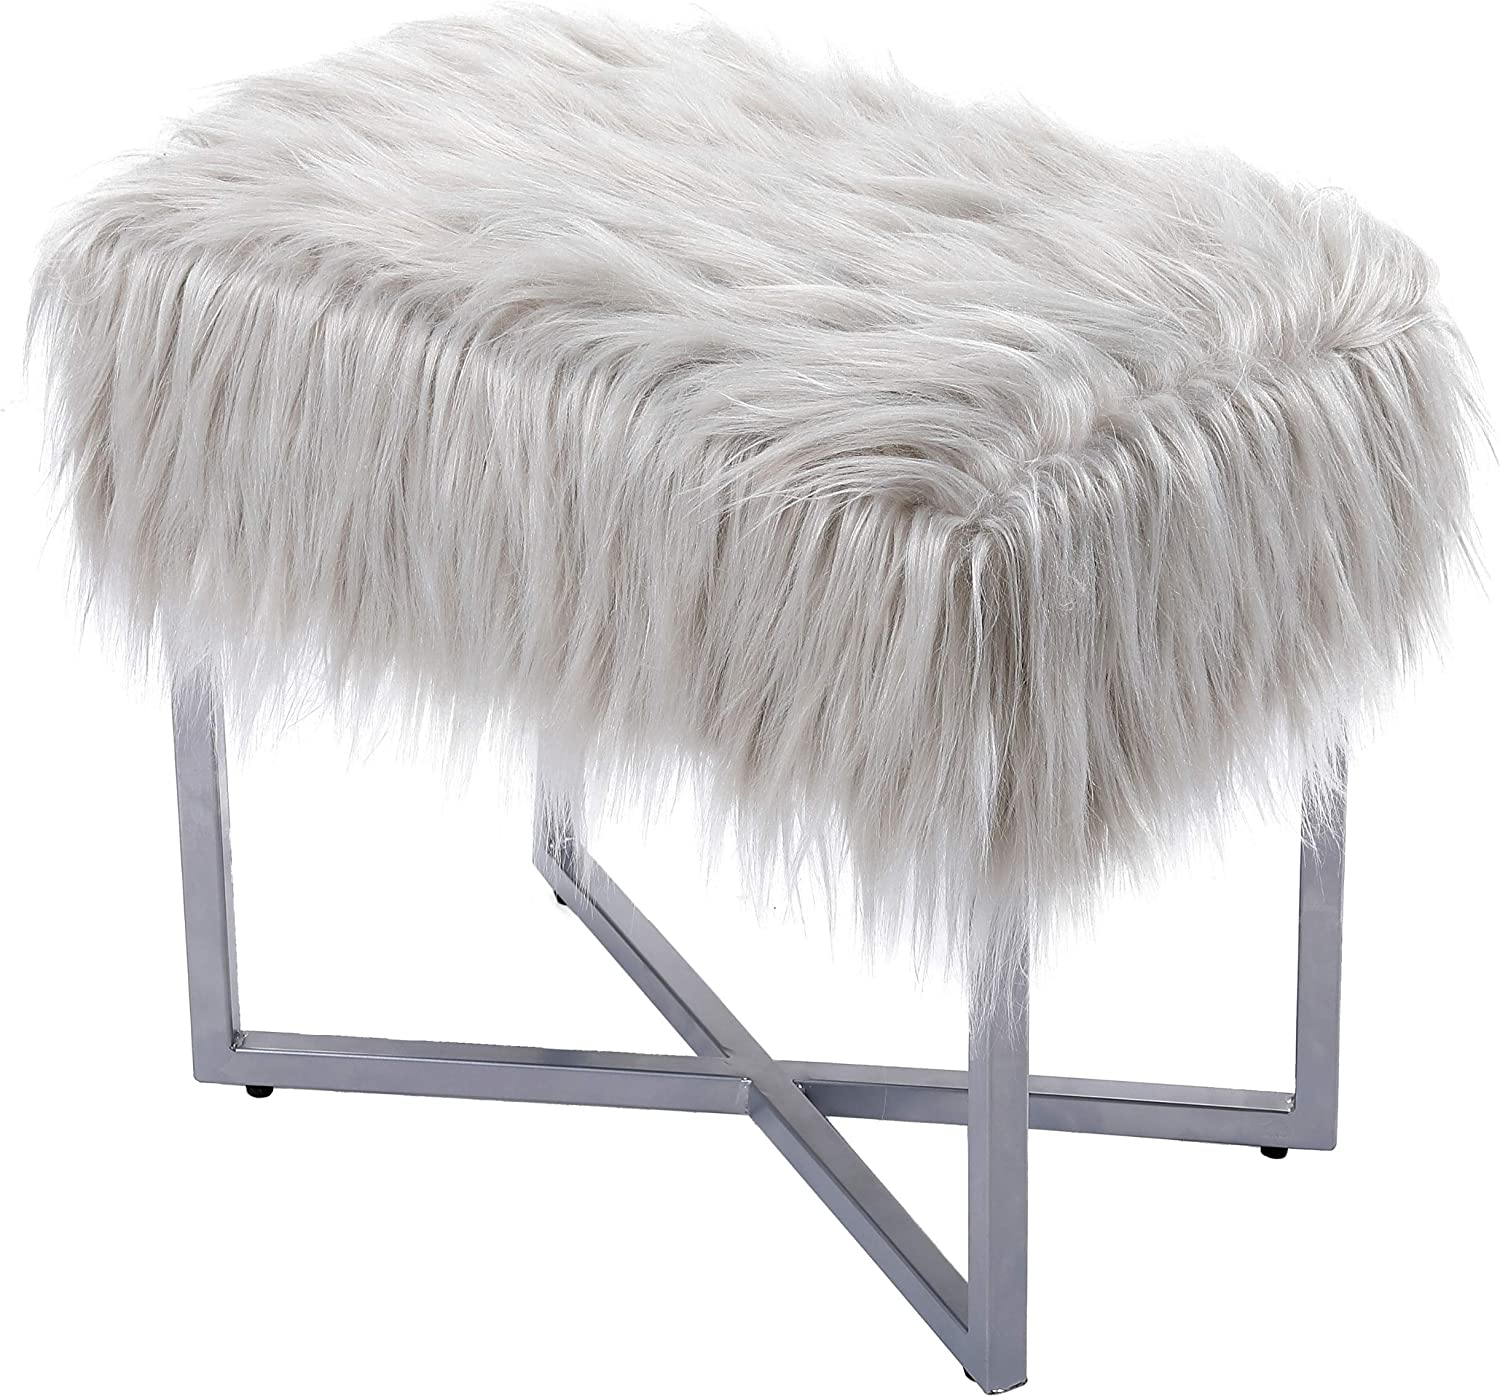 BirdRock Home Limited time sale Rectangular Grey Faux Foot Fur Stool with Fort Worth Mall Ottoman